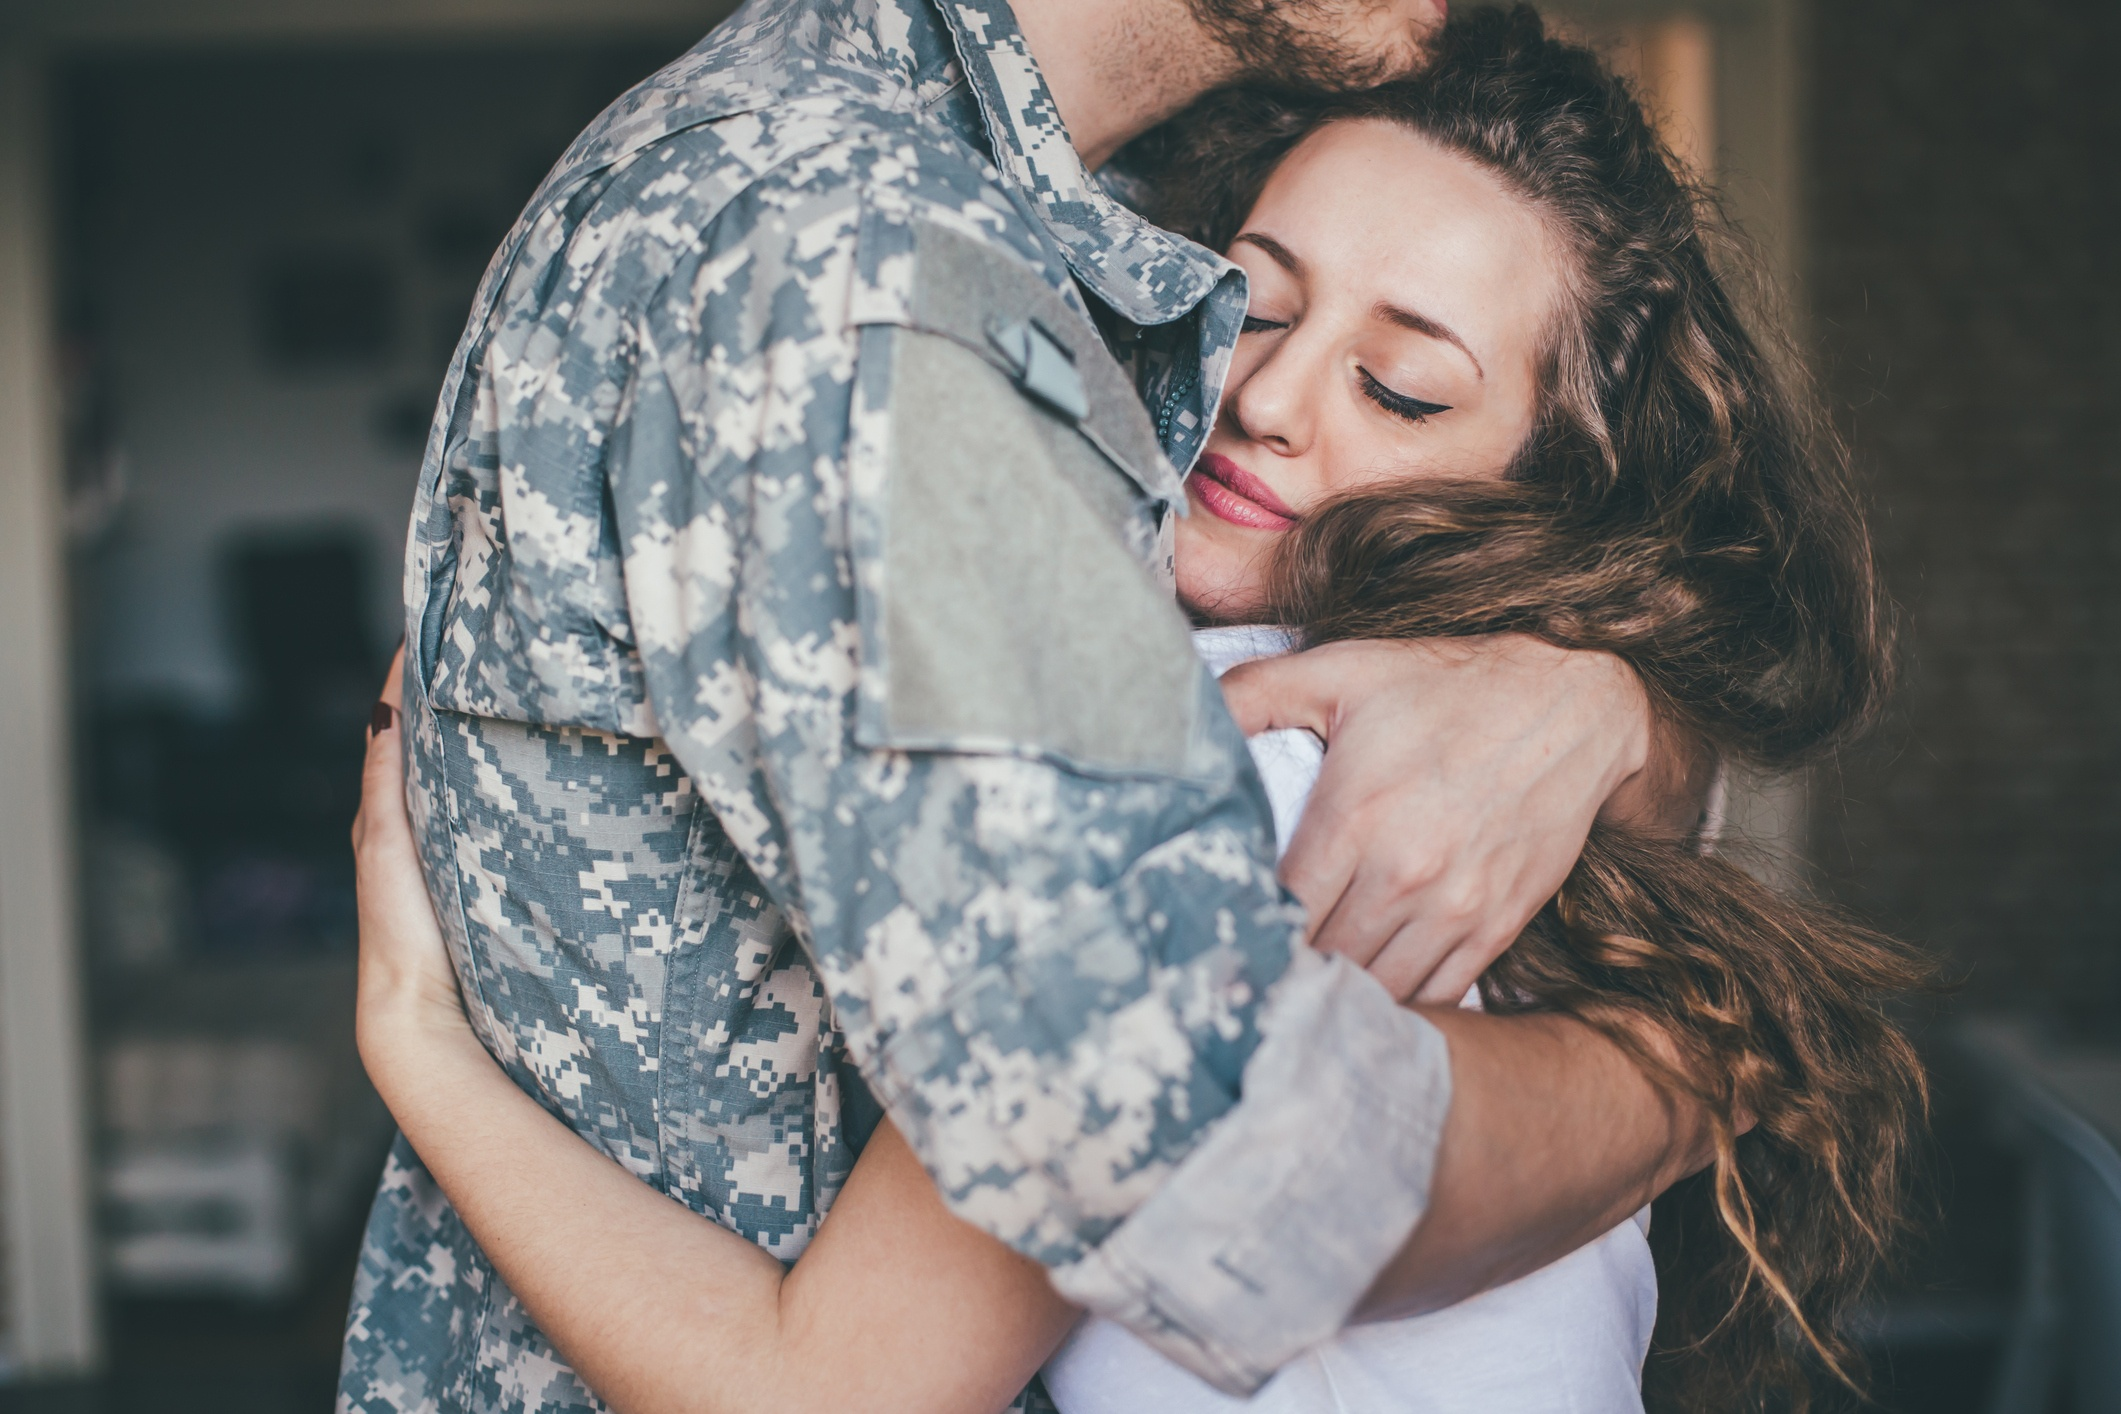 My military man is home at last